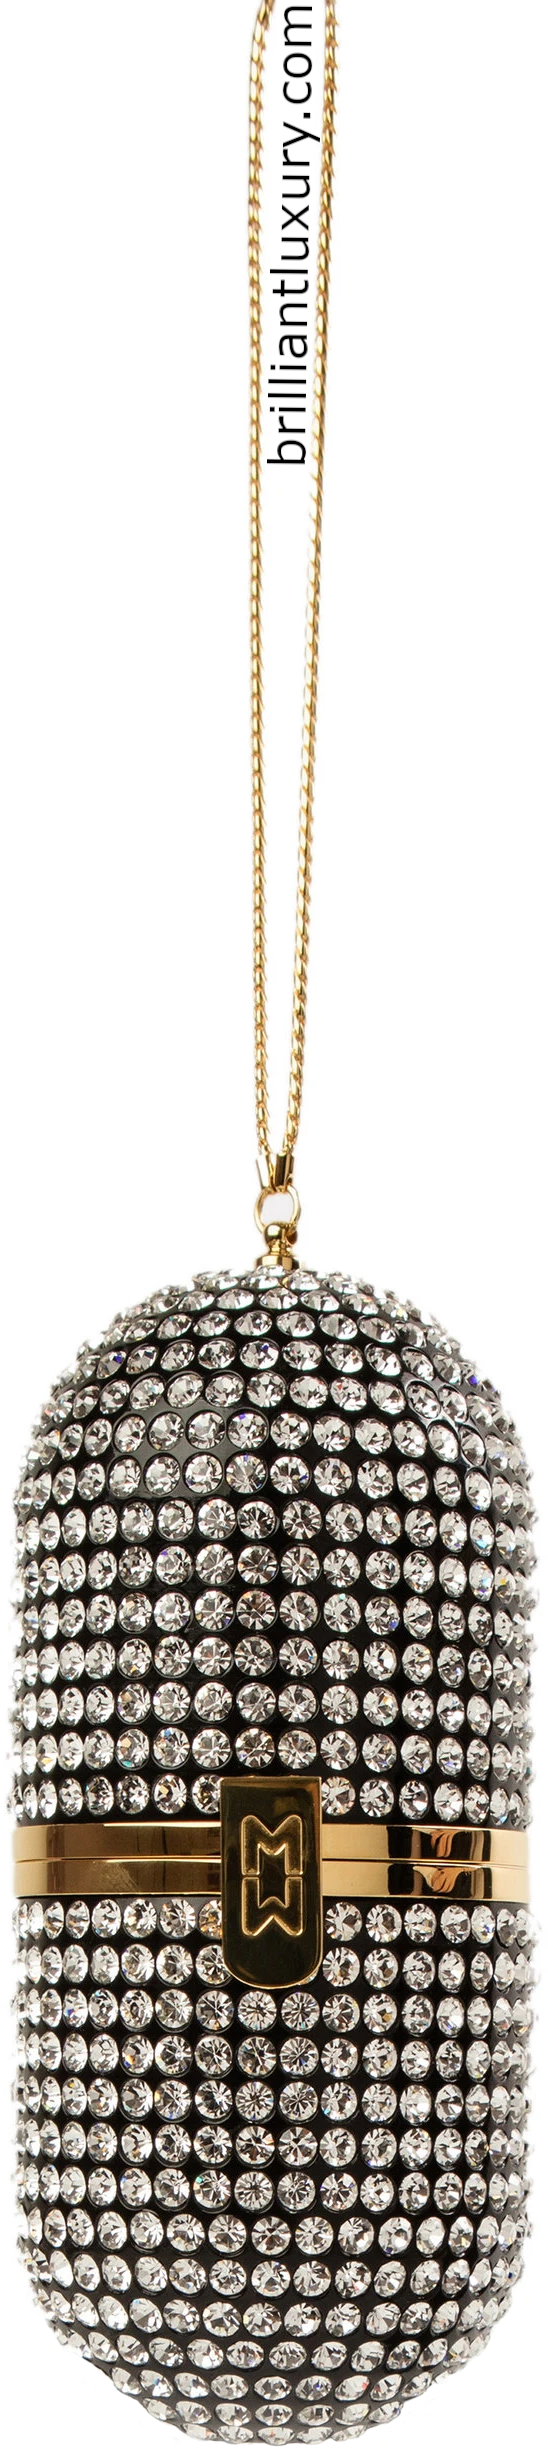 Marzook pill crystal bag